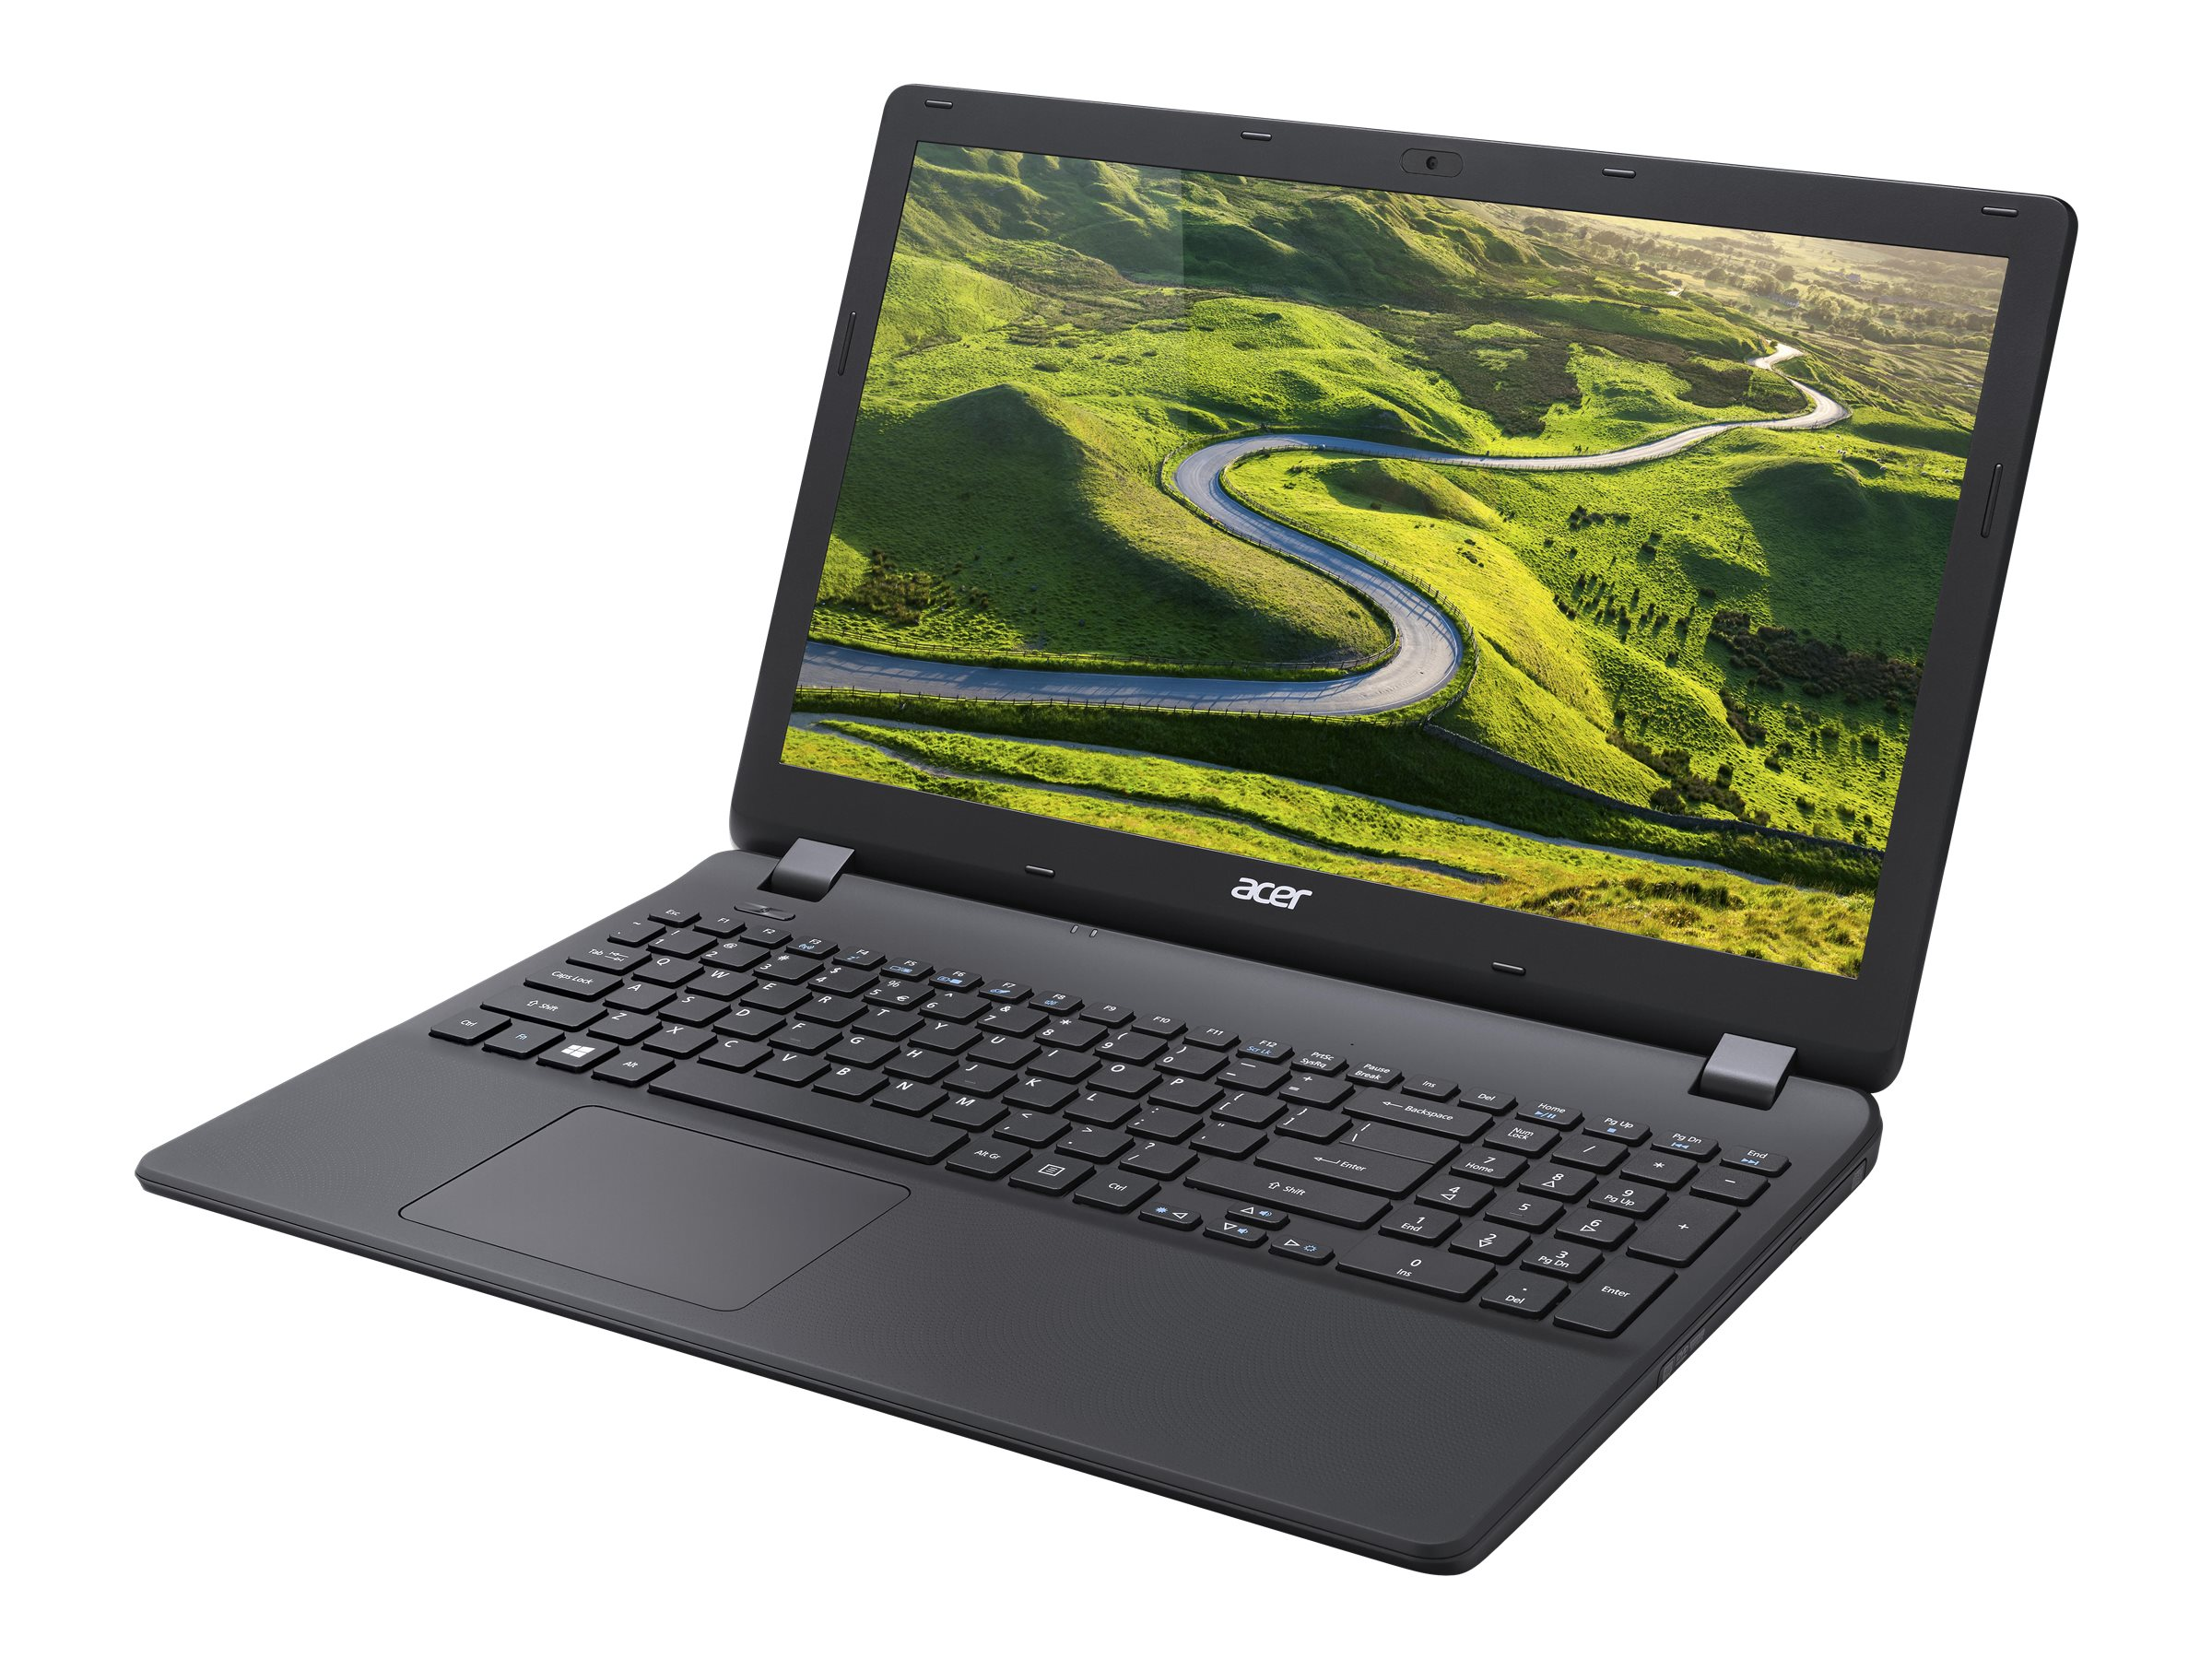 Acer NX.GCEAA.003 Image 1